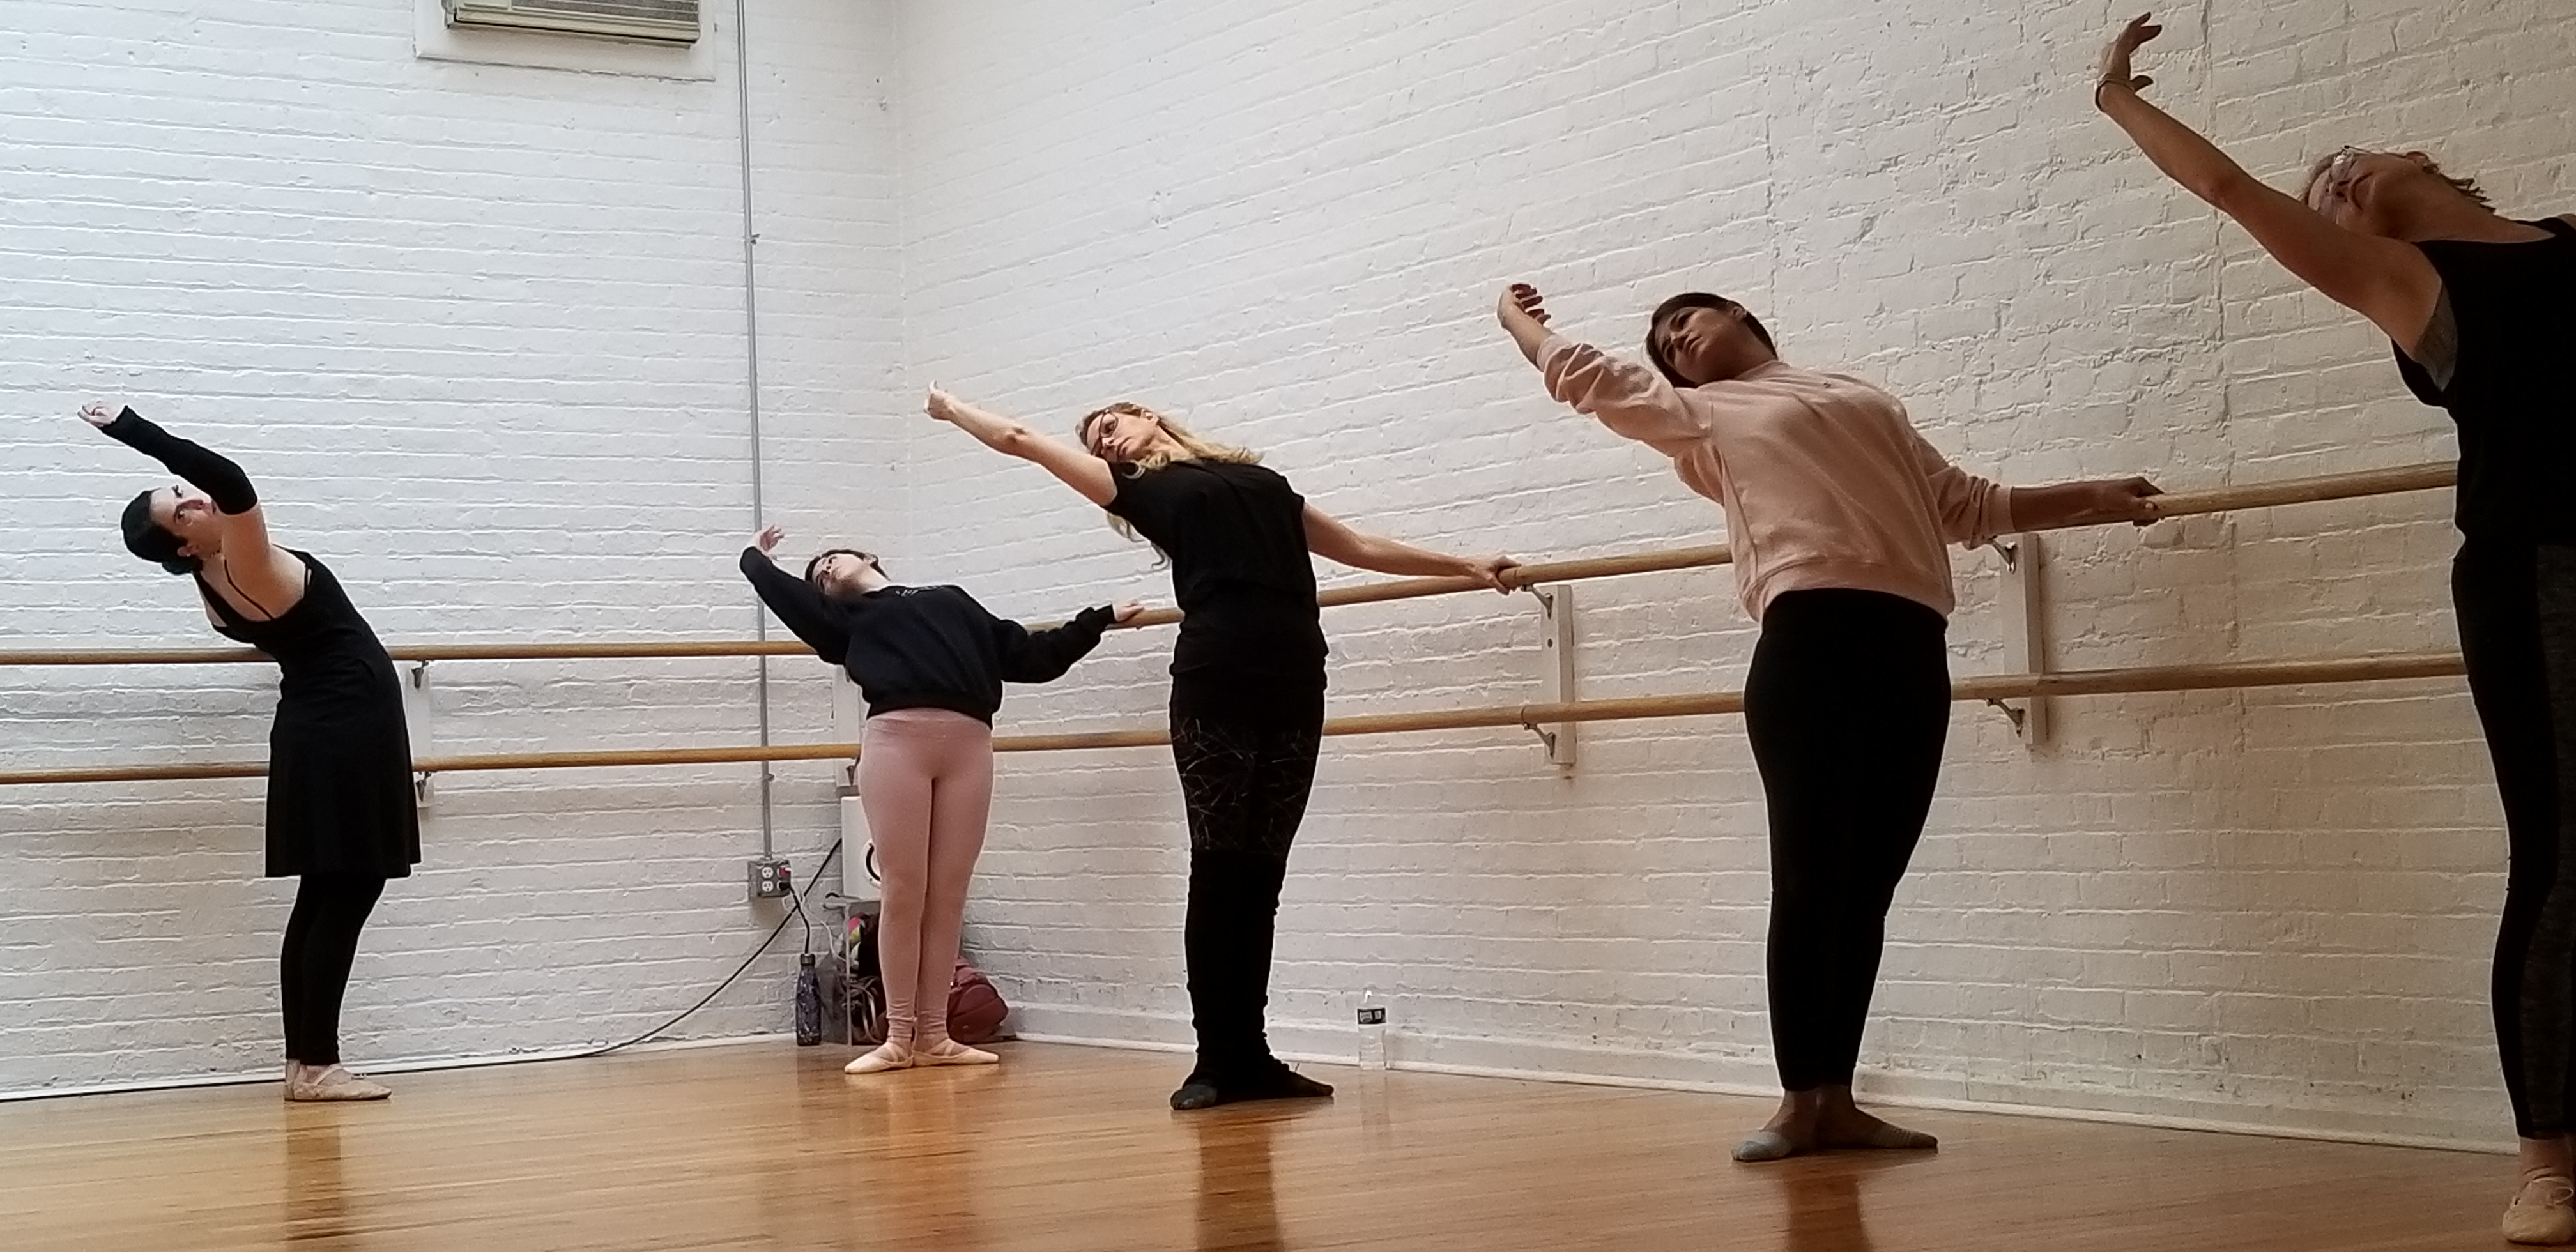 Group lessons at flagship studio Ballet & Body are small and comfortable